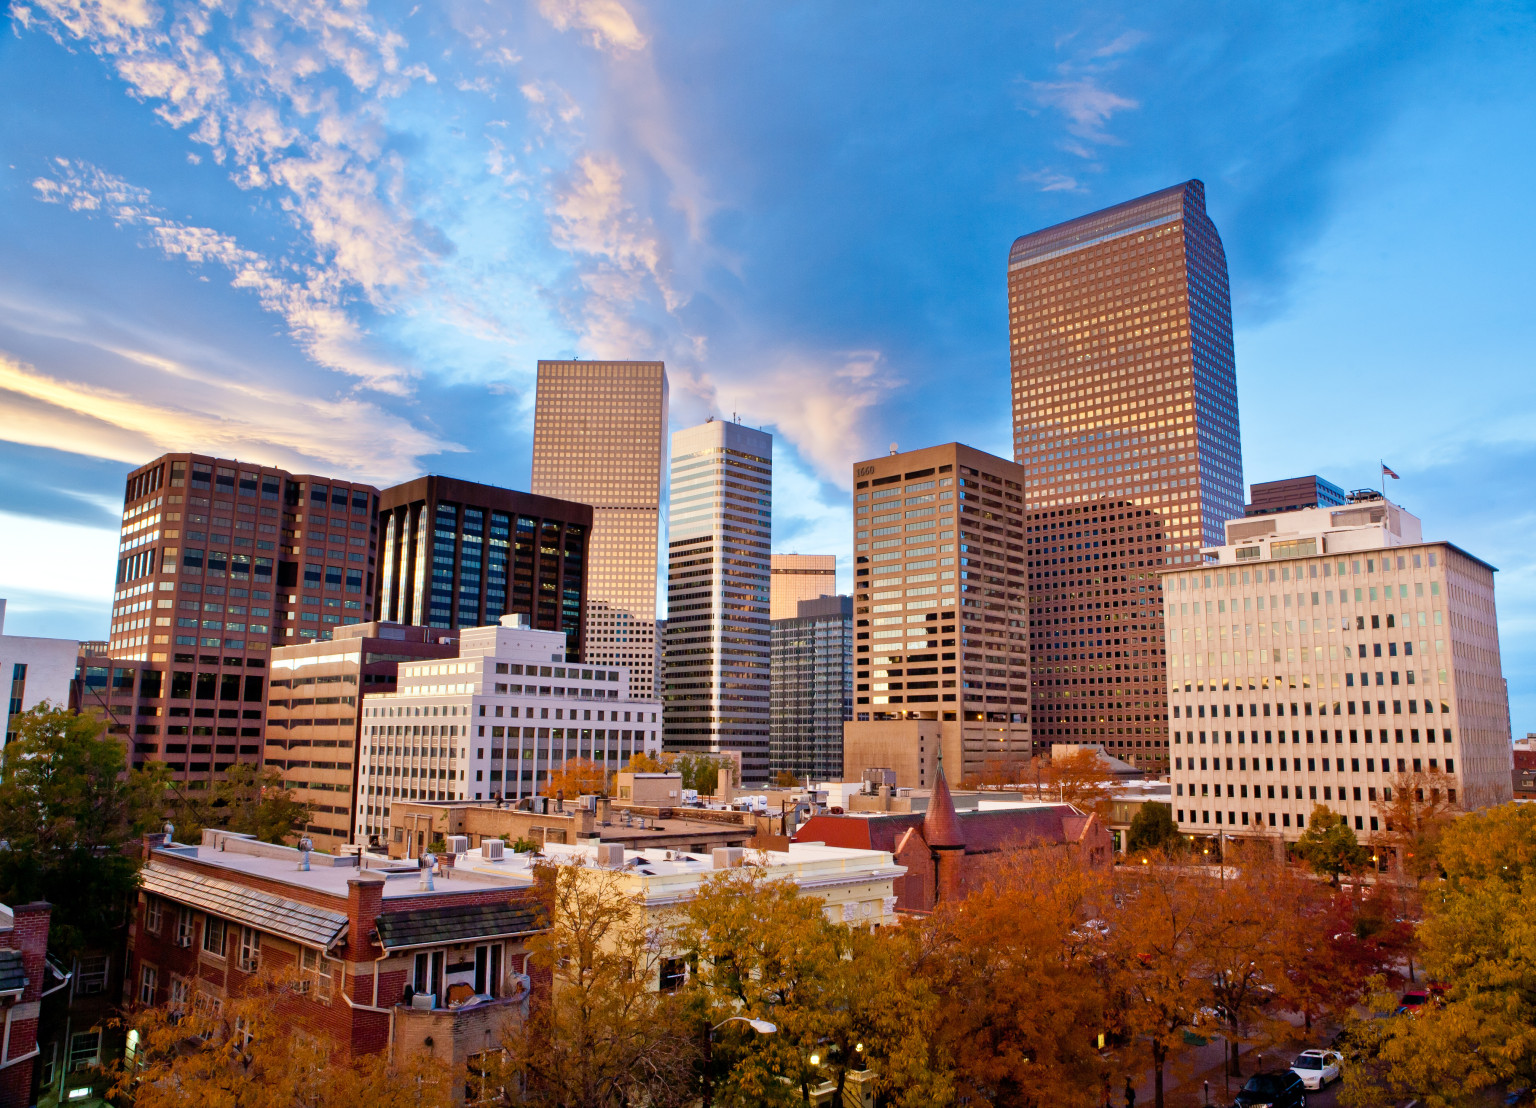 o THINGS TO DO IN DENVER facebook Denver Is The #1 Place To Live In The West